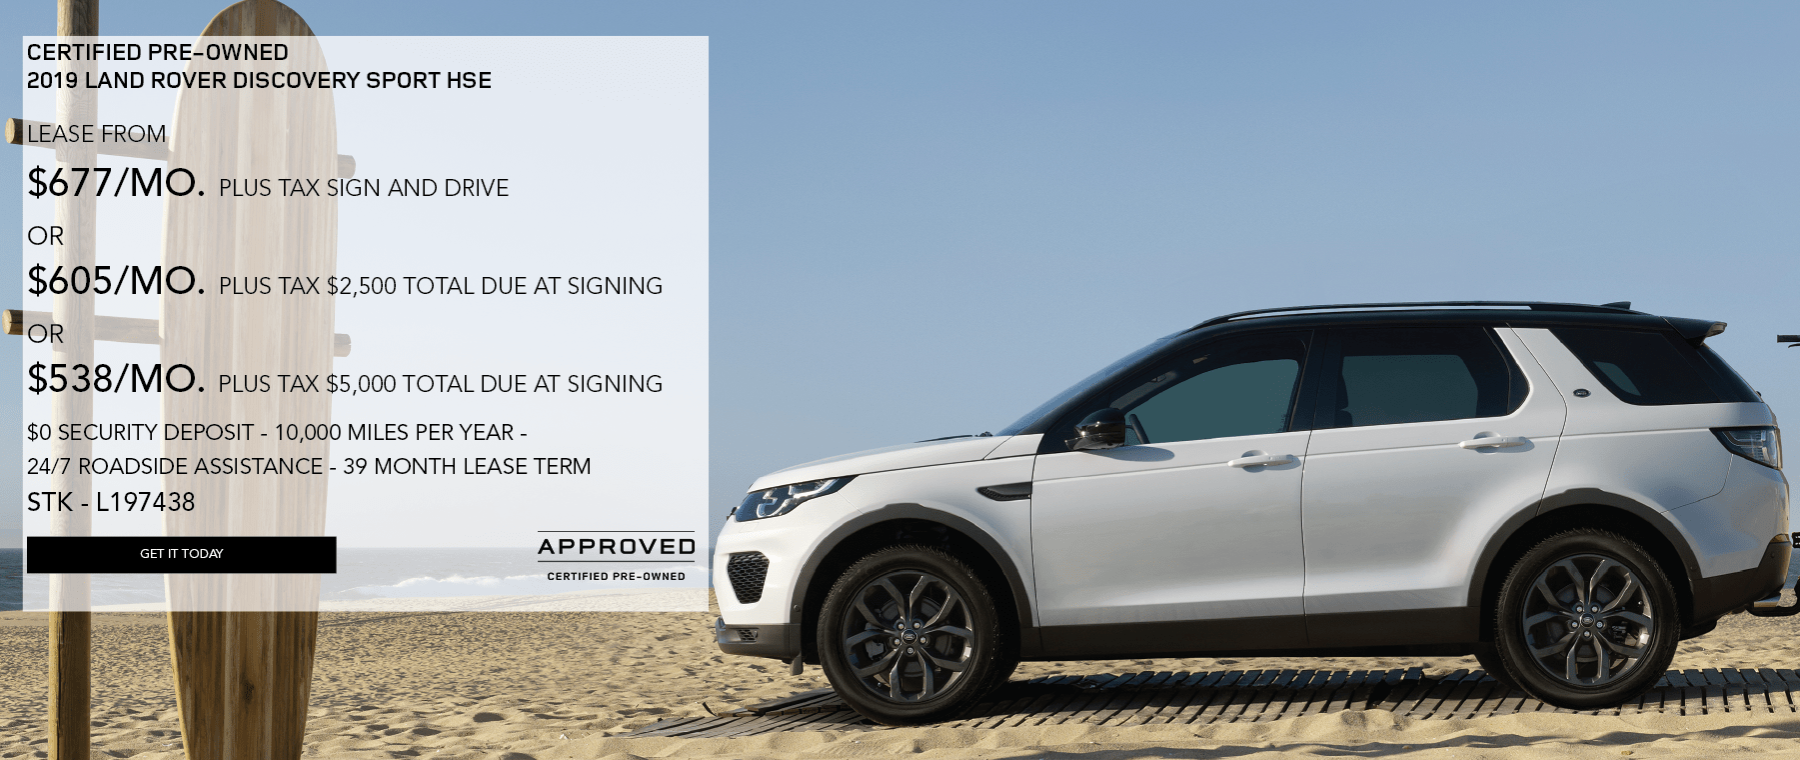 CERTIFIED PRE-OWNED 2019 LAND ROVER DISCOVERY SPORT HSE. LEASE FROM $693 PER MONTH PLUS TAX SIGN AND DRIVE. OR $625 PER MONTH. PLUS TAX WITH 2,500 TOTAL DUE AT SIGNING. OR $558 PER MONTH. WITH $5,000 TOTAL DUE AT SIGNING. $0 SECURITY DEPOSIT. 10,000 MILES PER YEAR. 24/7 ROADSIDE ASSISTANCE. 39 MONTH. LEASE TERM STOCK NUMBER L197497. WHITE DISCOVERY SPORT PARKED ON THE BEACH WITH A BIKE RACK ACCESSORY ATTACHED TO THE REAR OF THE VEHICLE.